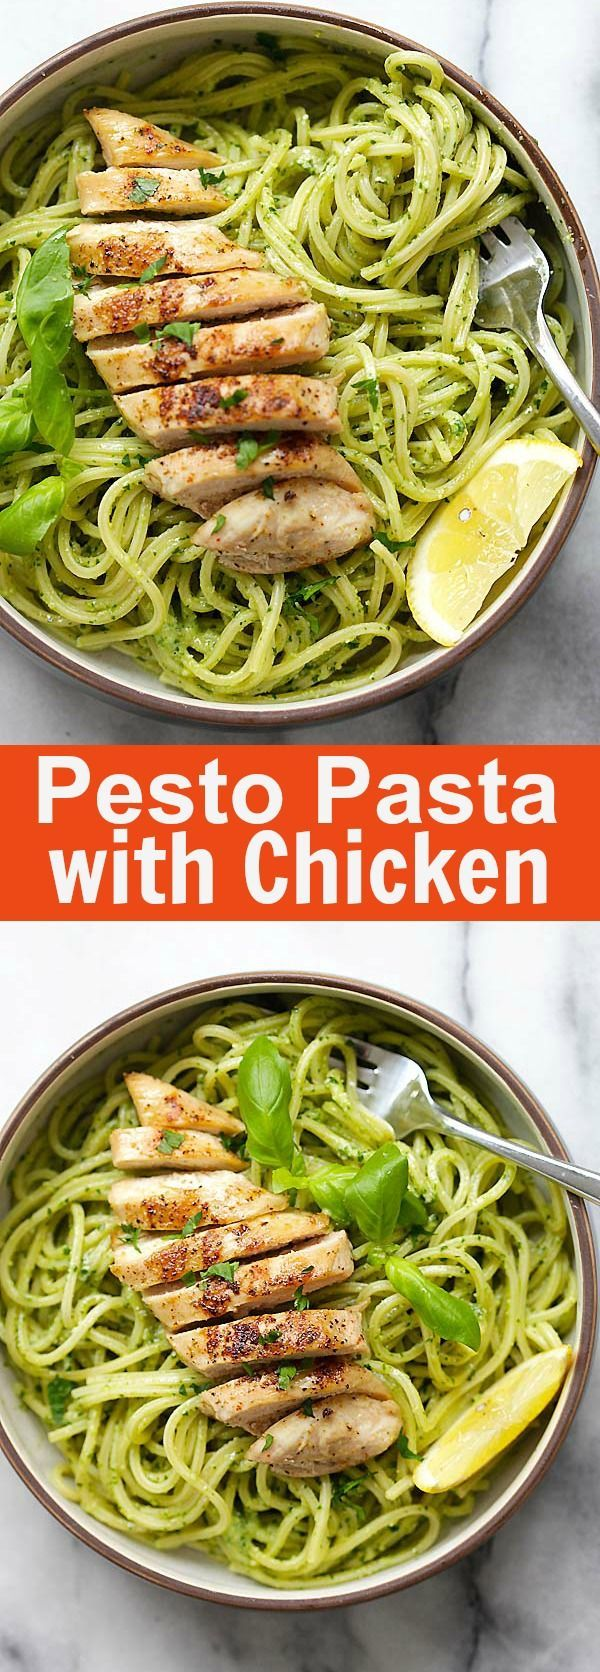 Pesto Pasta with Chicken – easy pasta with basil pesto and grilled chicken. Loaded with yogurt and Parmesan cheese, this recipe is so delicious | rasamalaysia.com